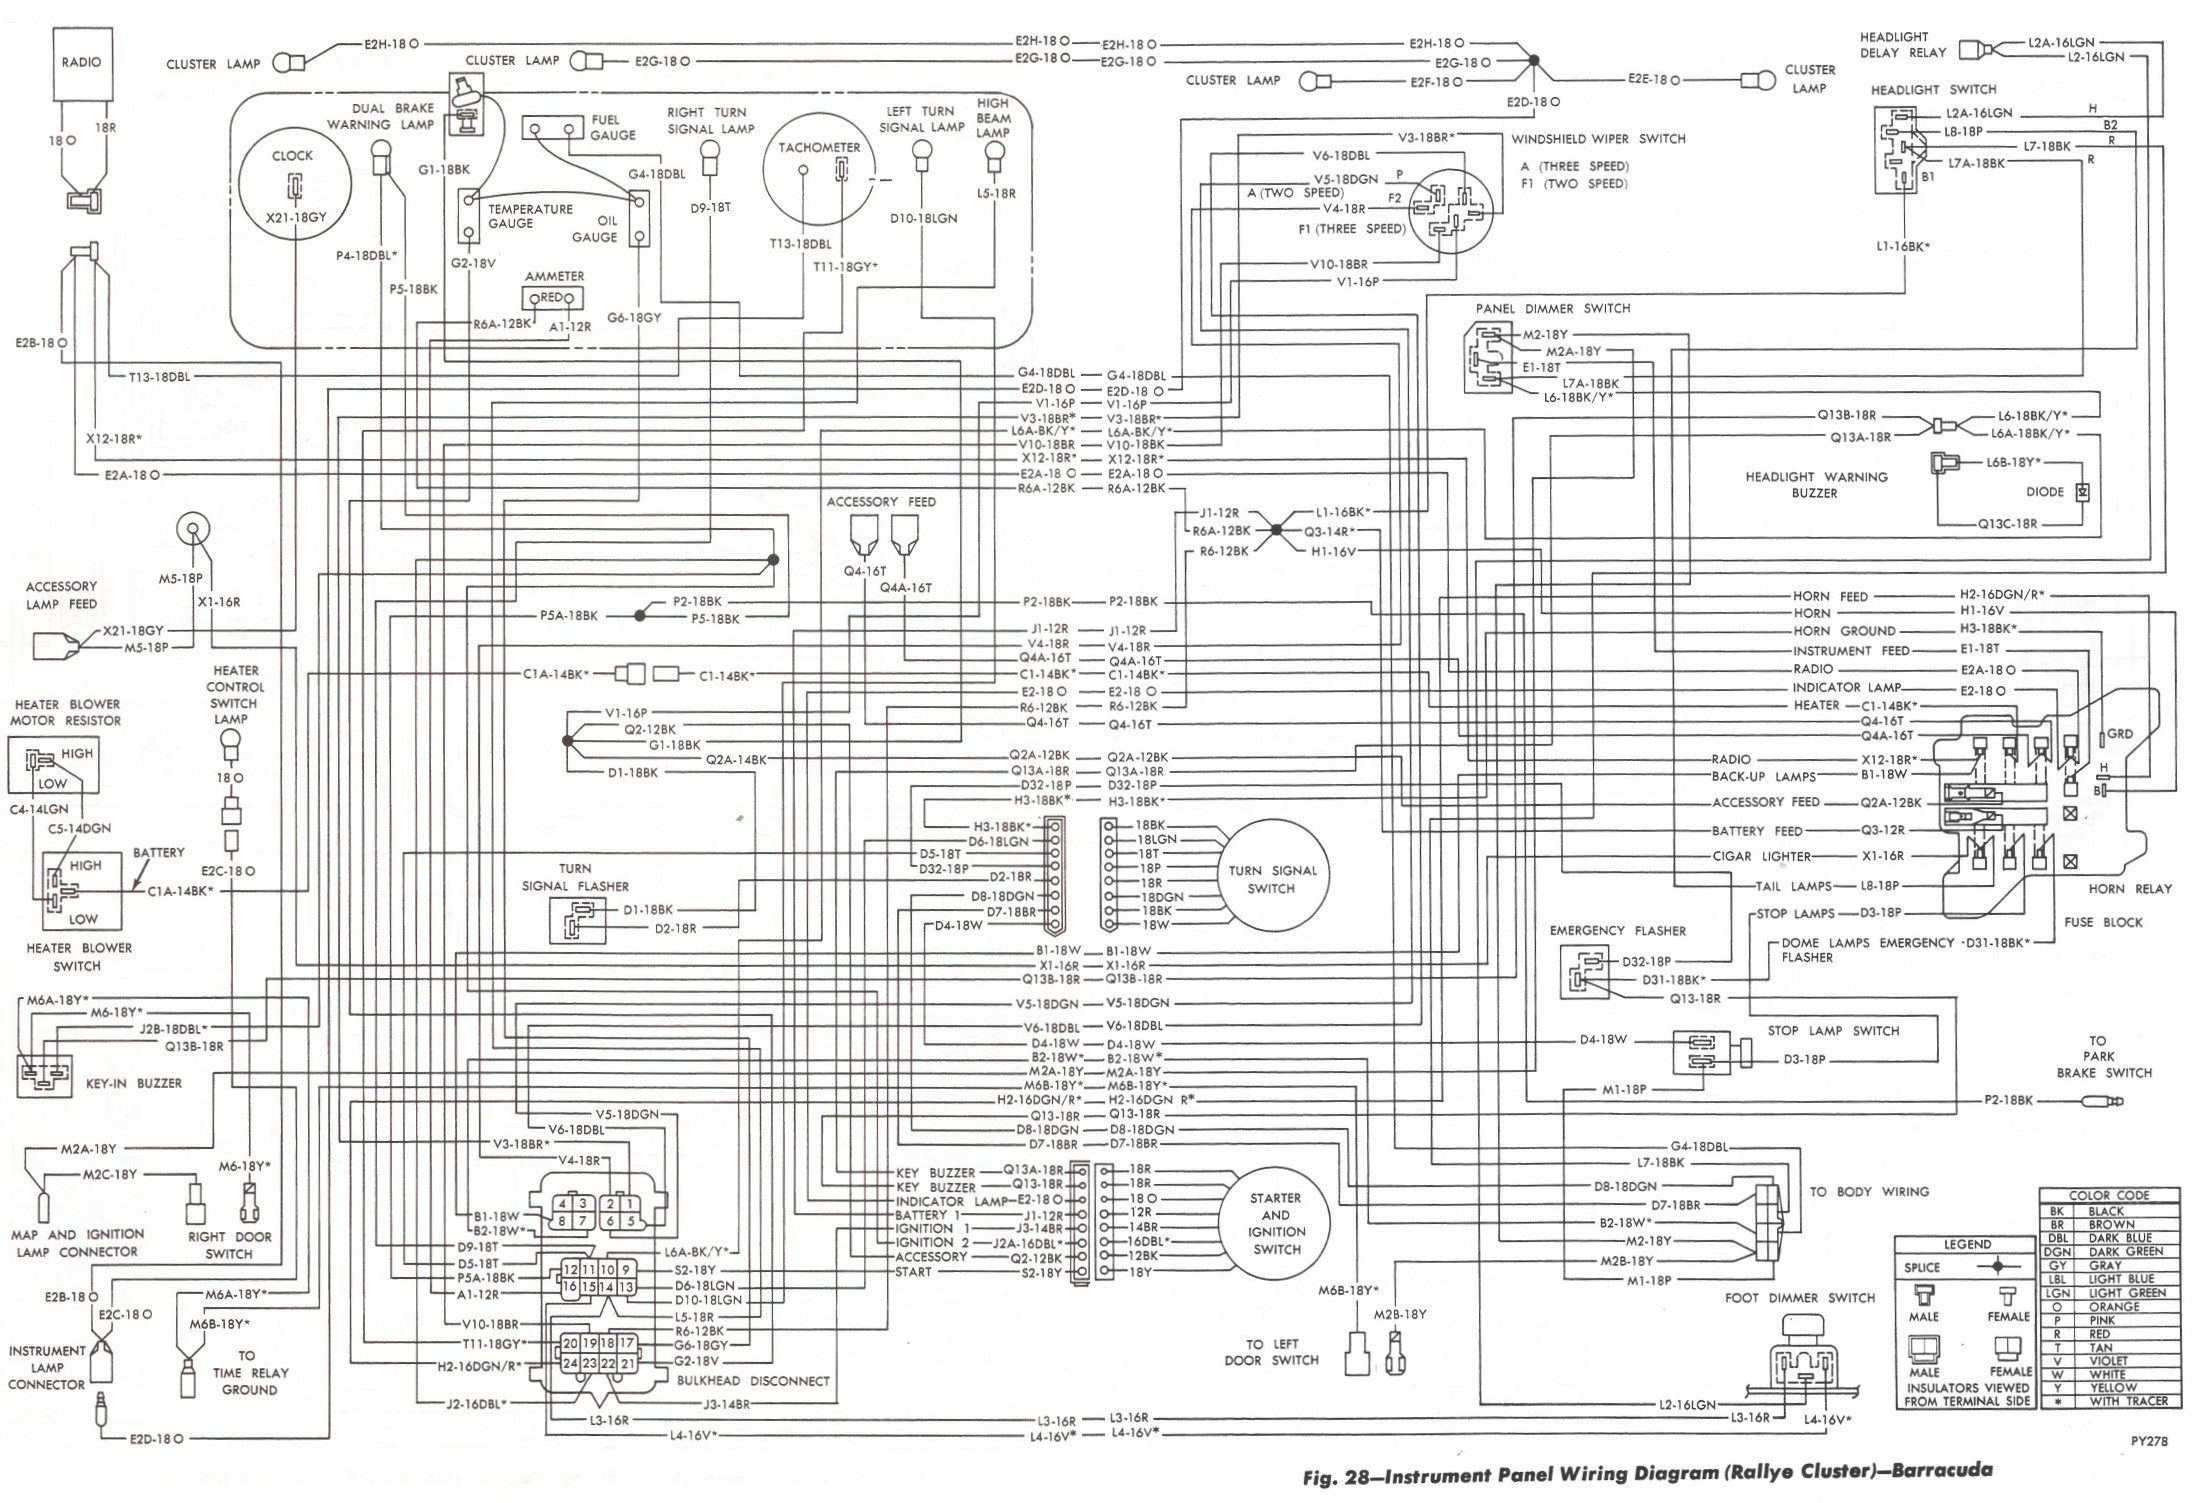 Plymouth Barracuda Wiring Diagrams - Wiring Diagrams DataUssel